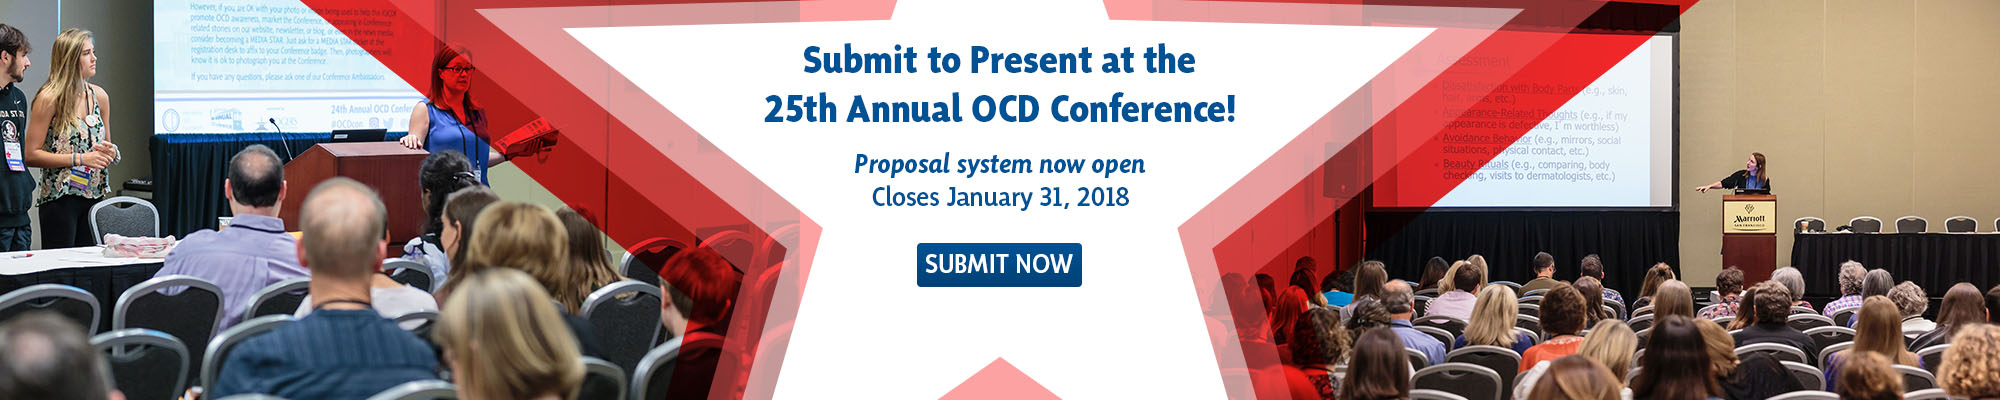 Submit a Proposal for the 25th Annual OCD Conference